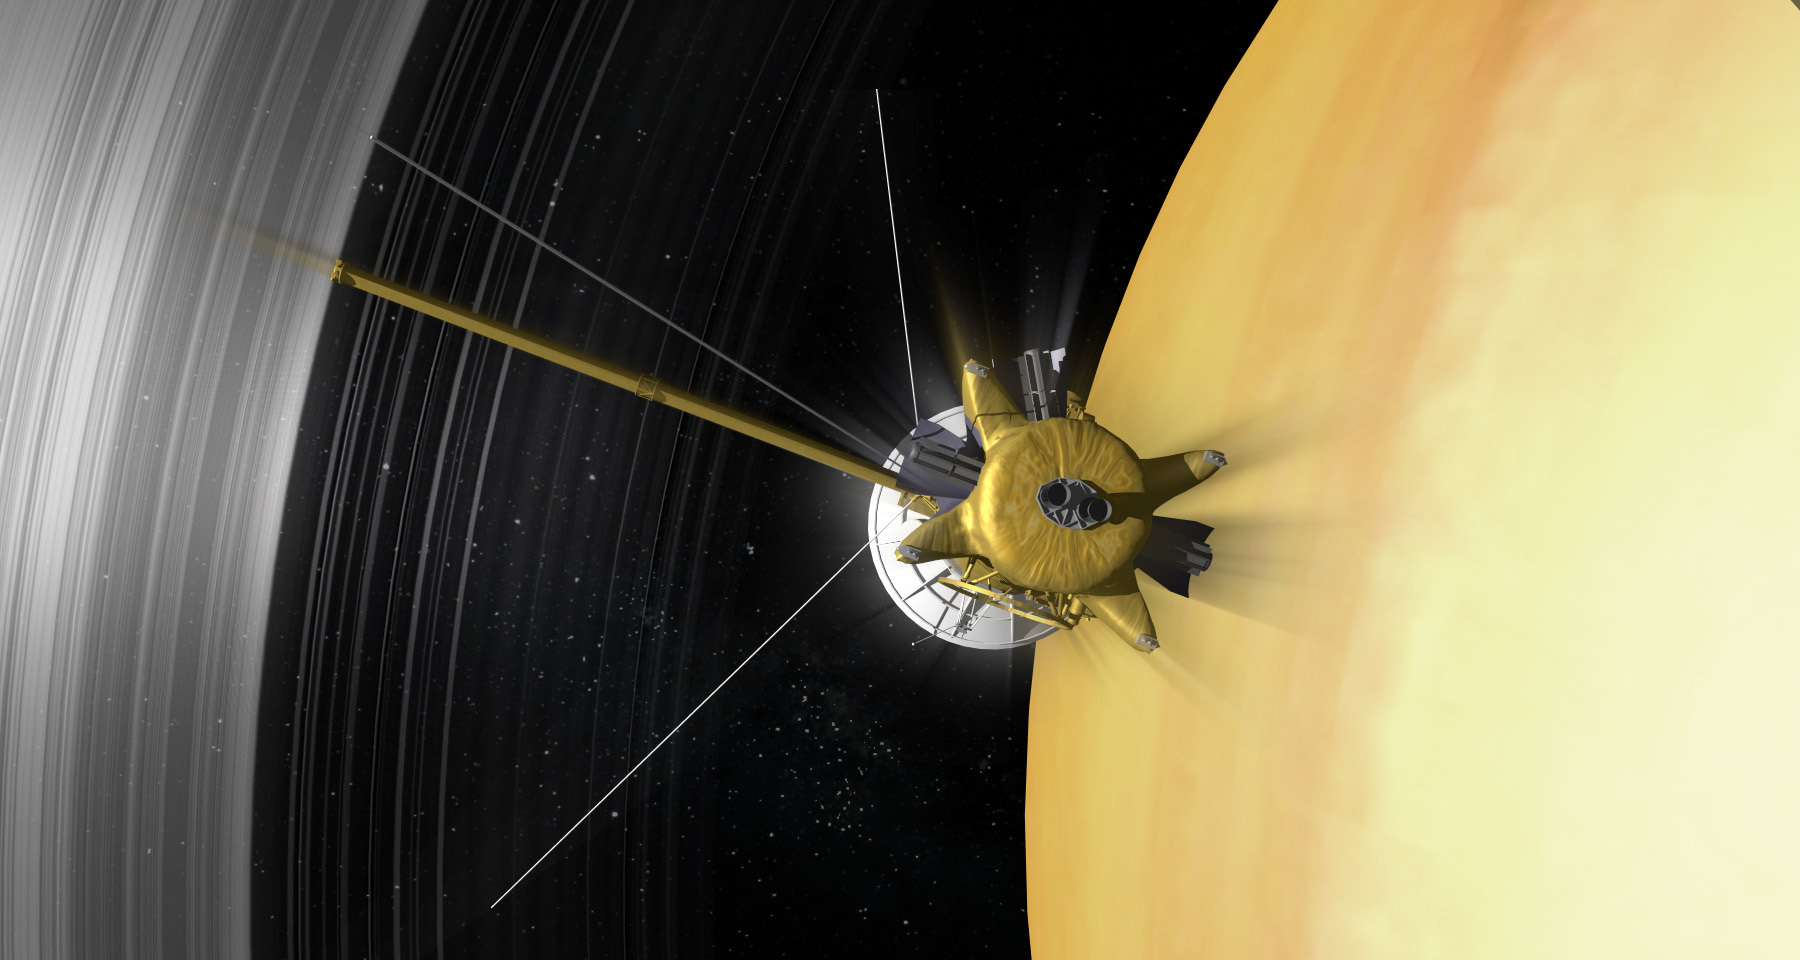 Cassini's final phase. NASA/JPL-Caltech.